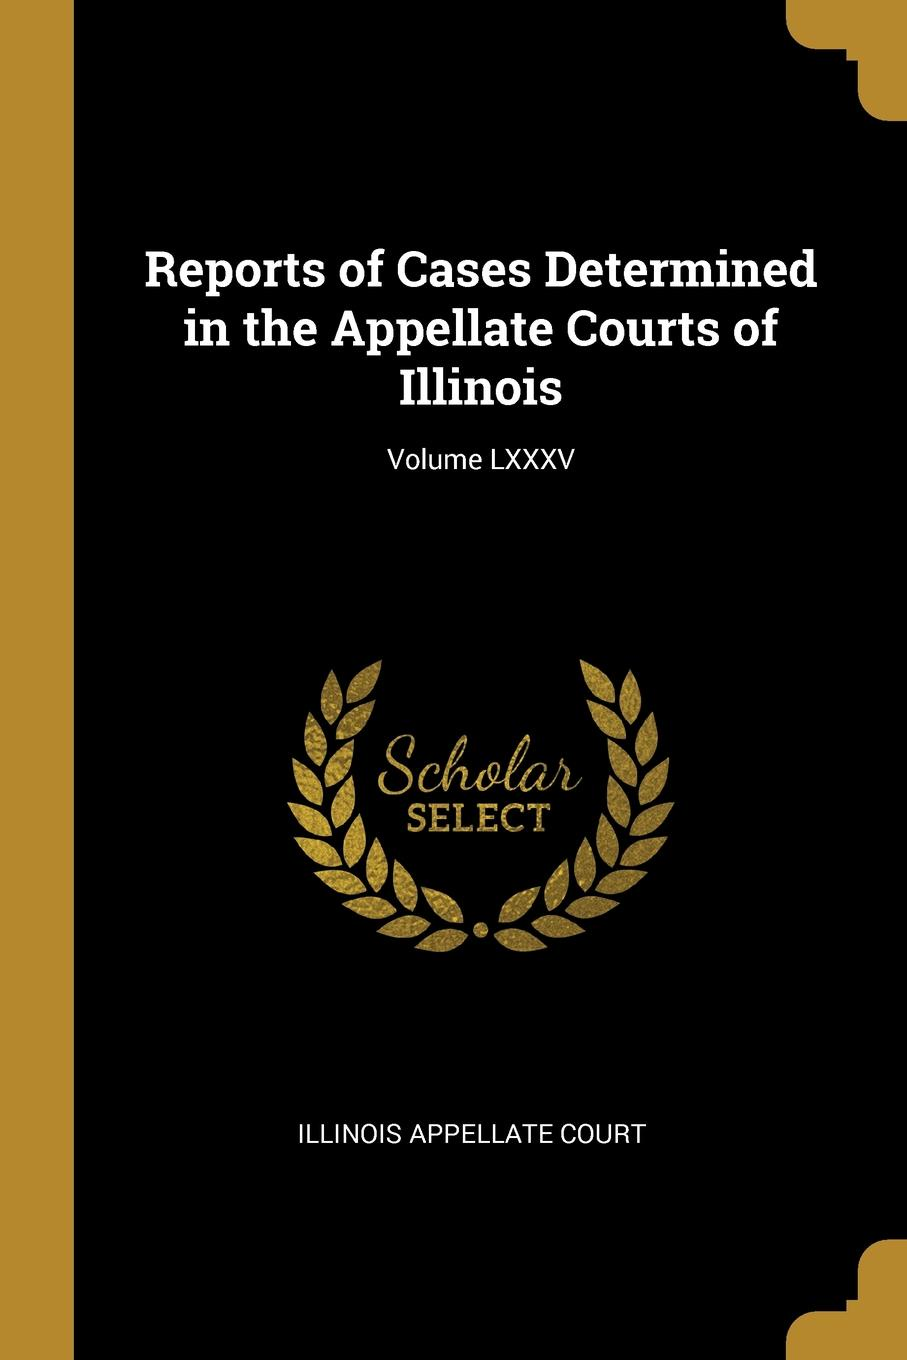 Illinois Appellate Court Reports of Cases Determined in the Appellate Courts of Illinois; Volume LXXXV